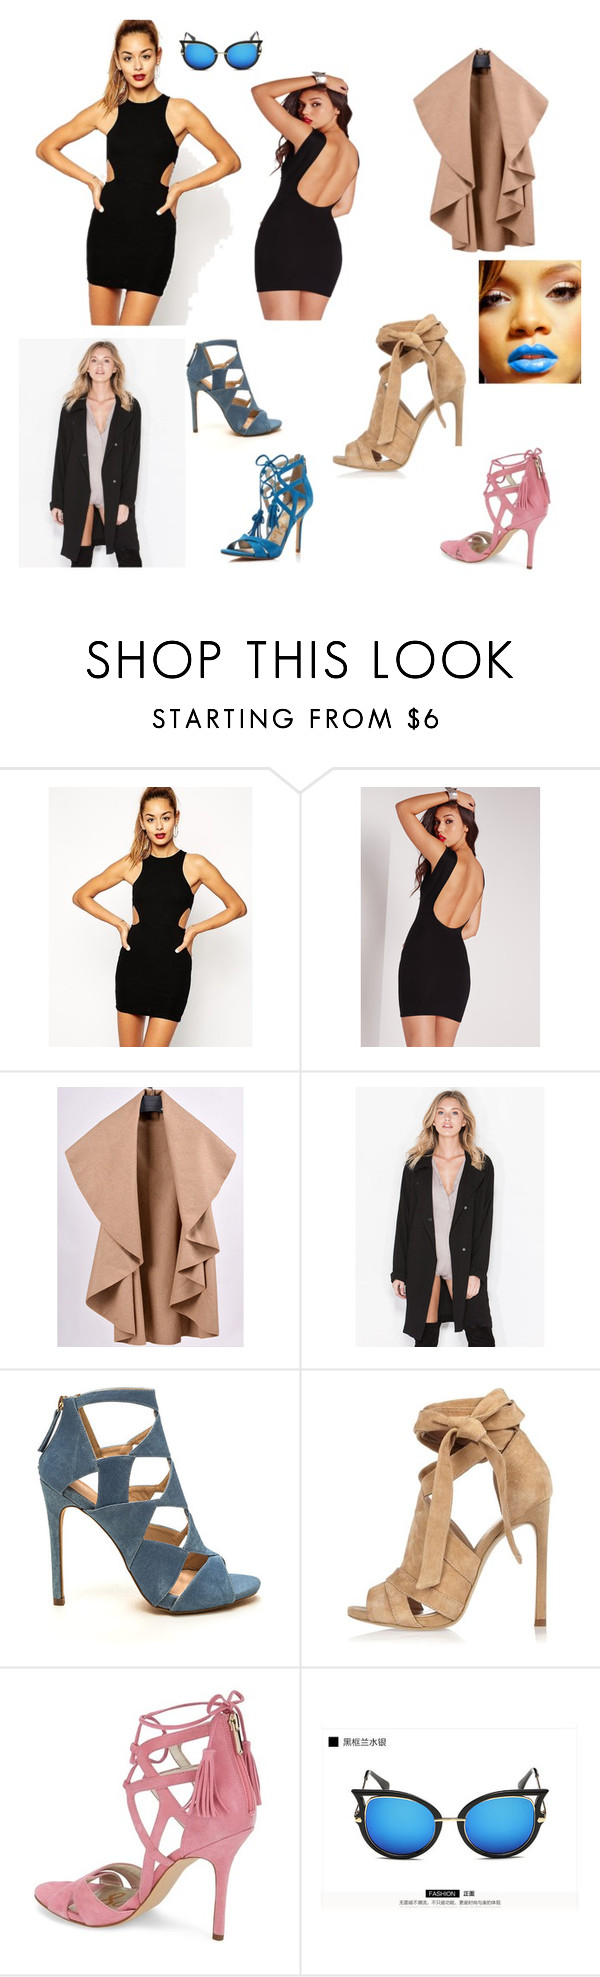 """""""Rihanna Realness"""" by themitchhilsociety on Polyvore featuring ASOS, Missguided, River Island, Sam Edelman and KOON"""